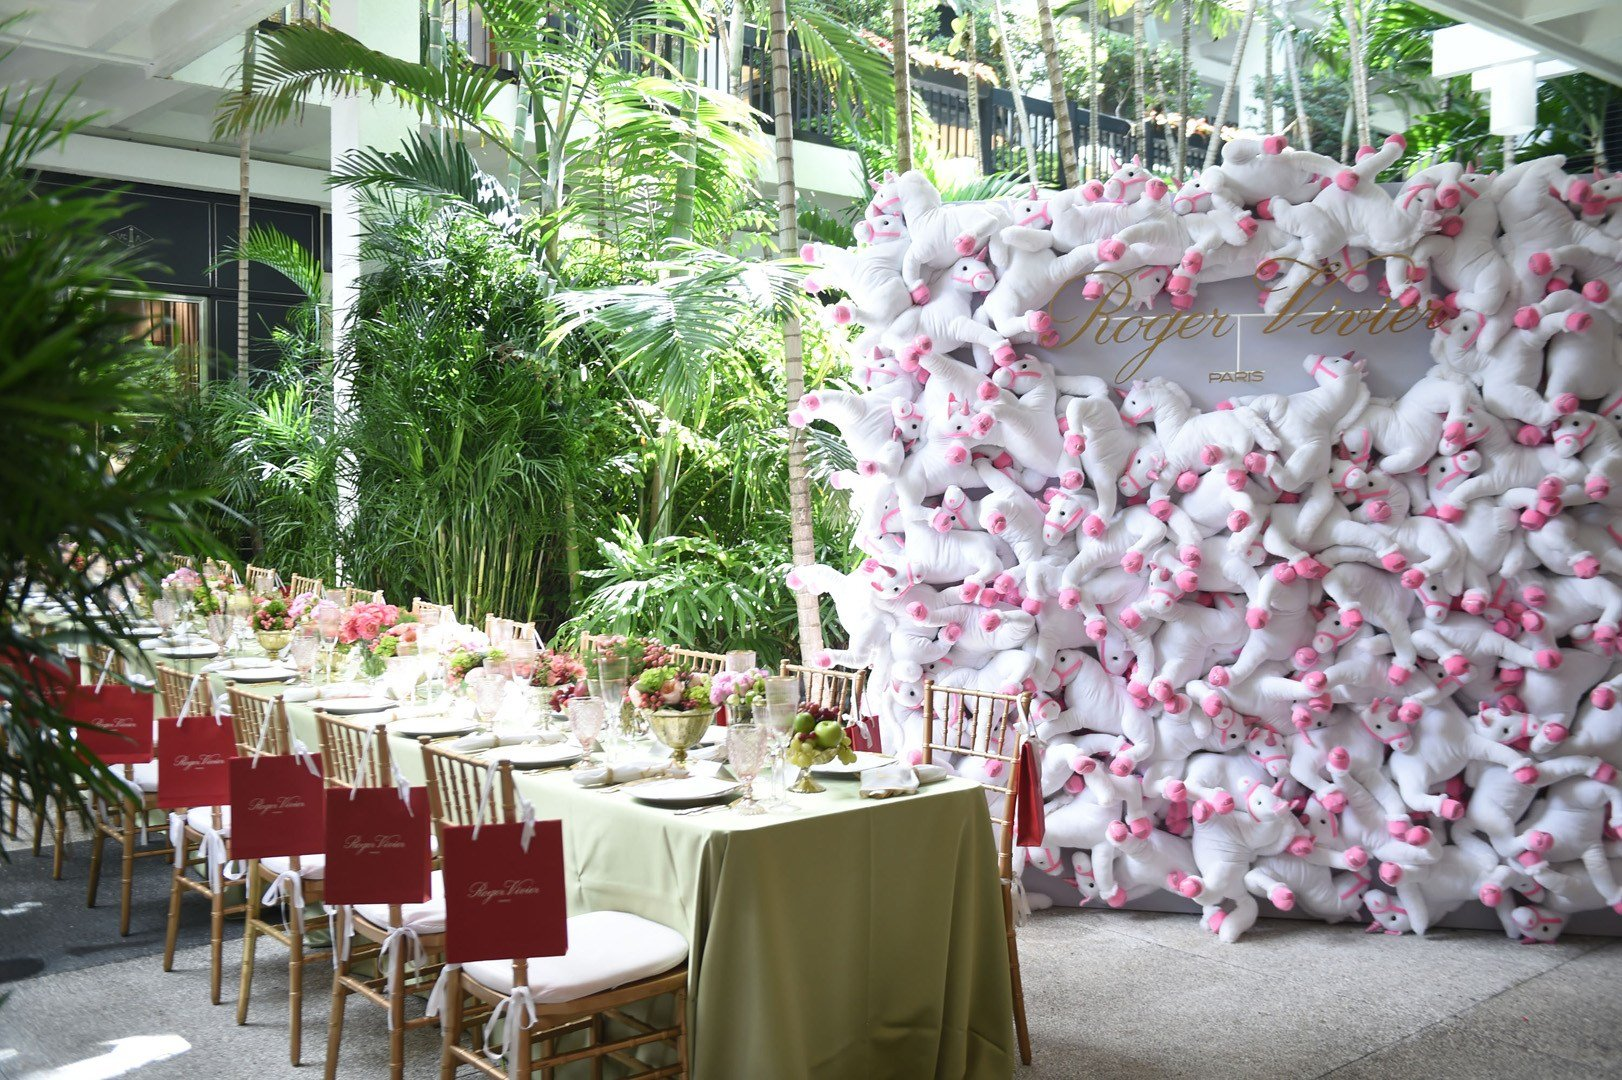 Roger vivier celebrates 10 Years at Bal Harbour Shops with a ladies luncheon alongside the launch of the Fall issue of Bal Harbour Magazine